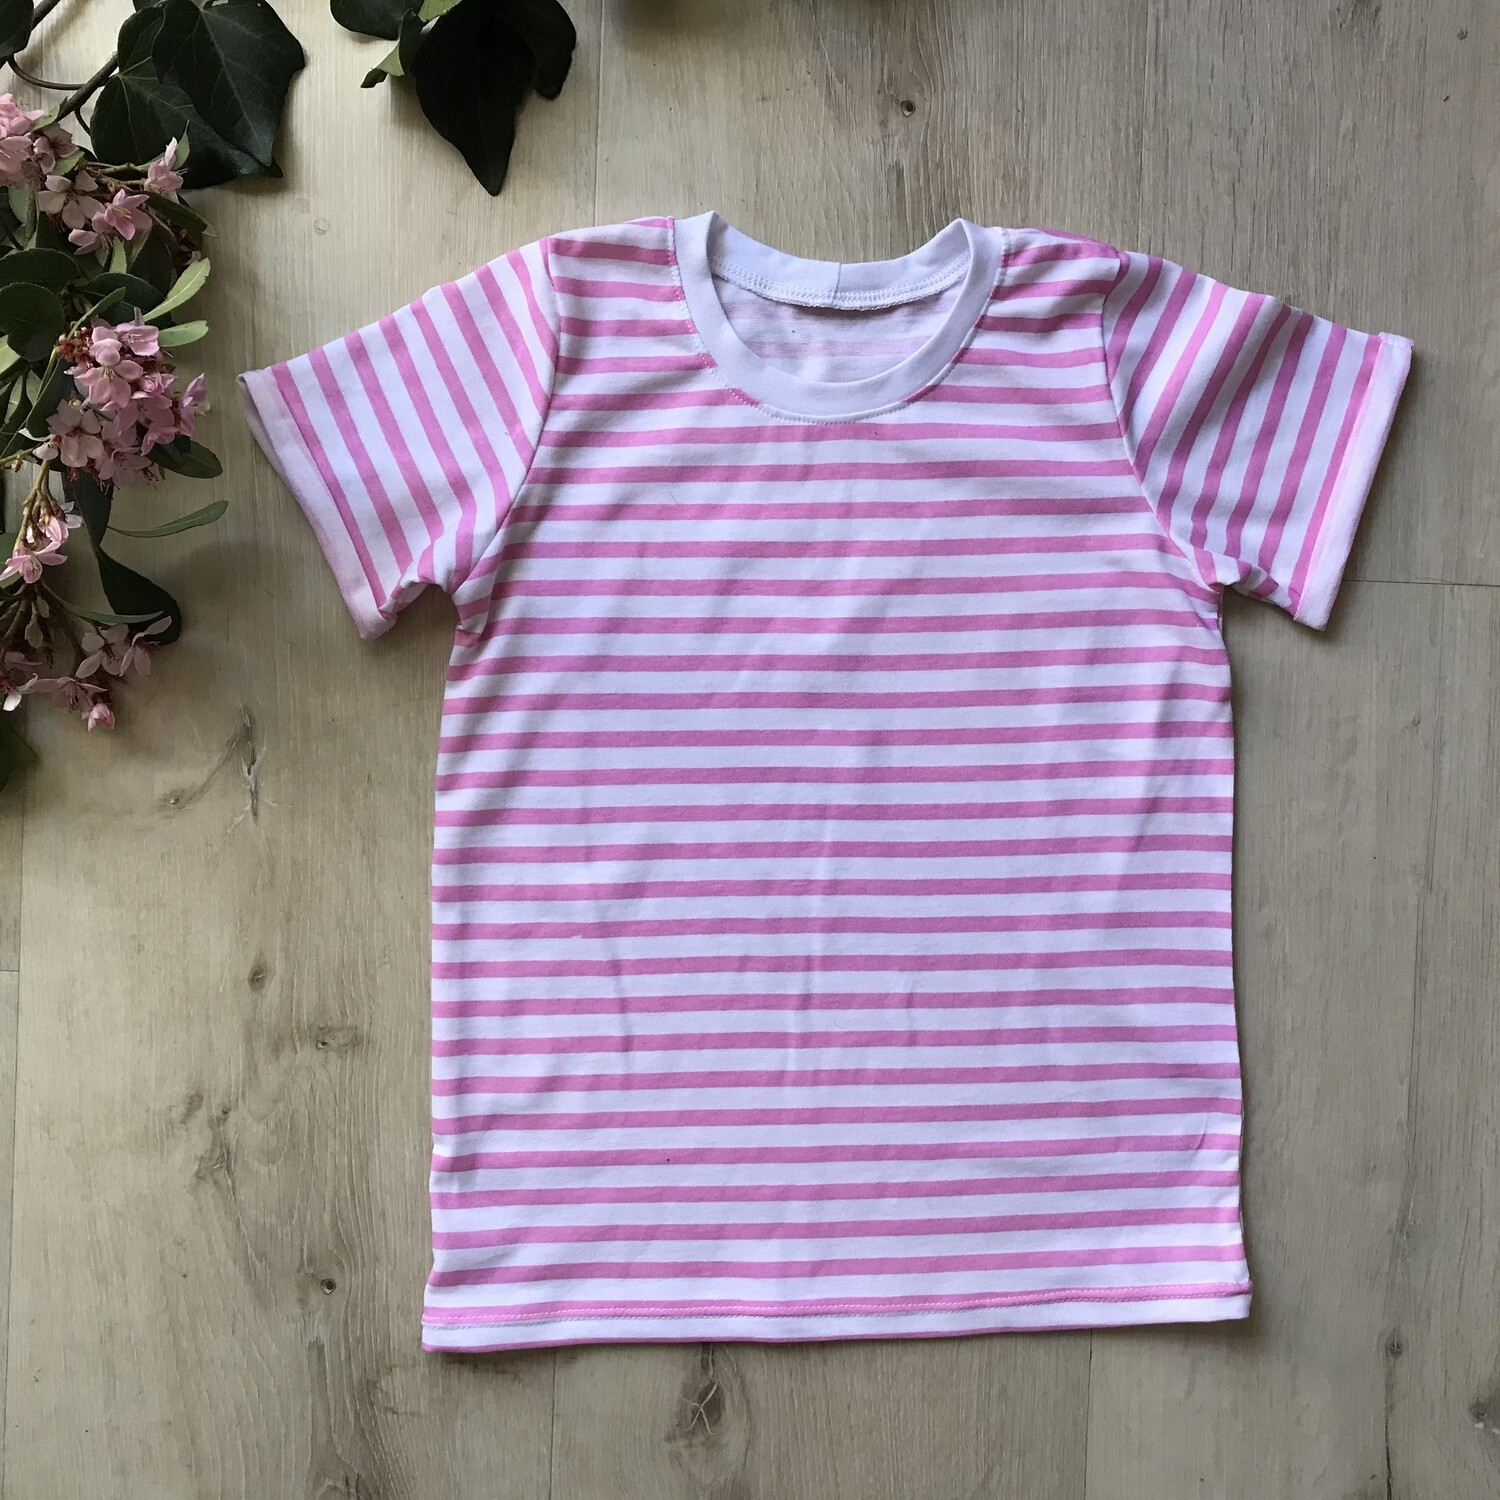 Pink striped tshirt